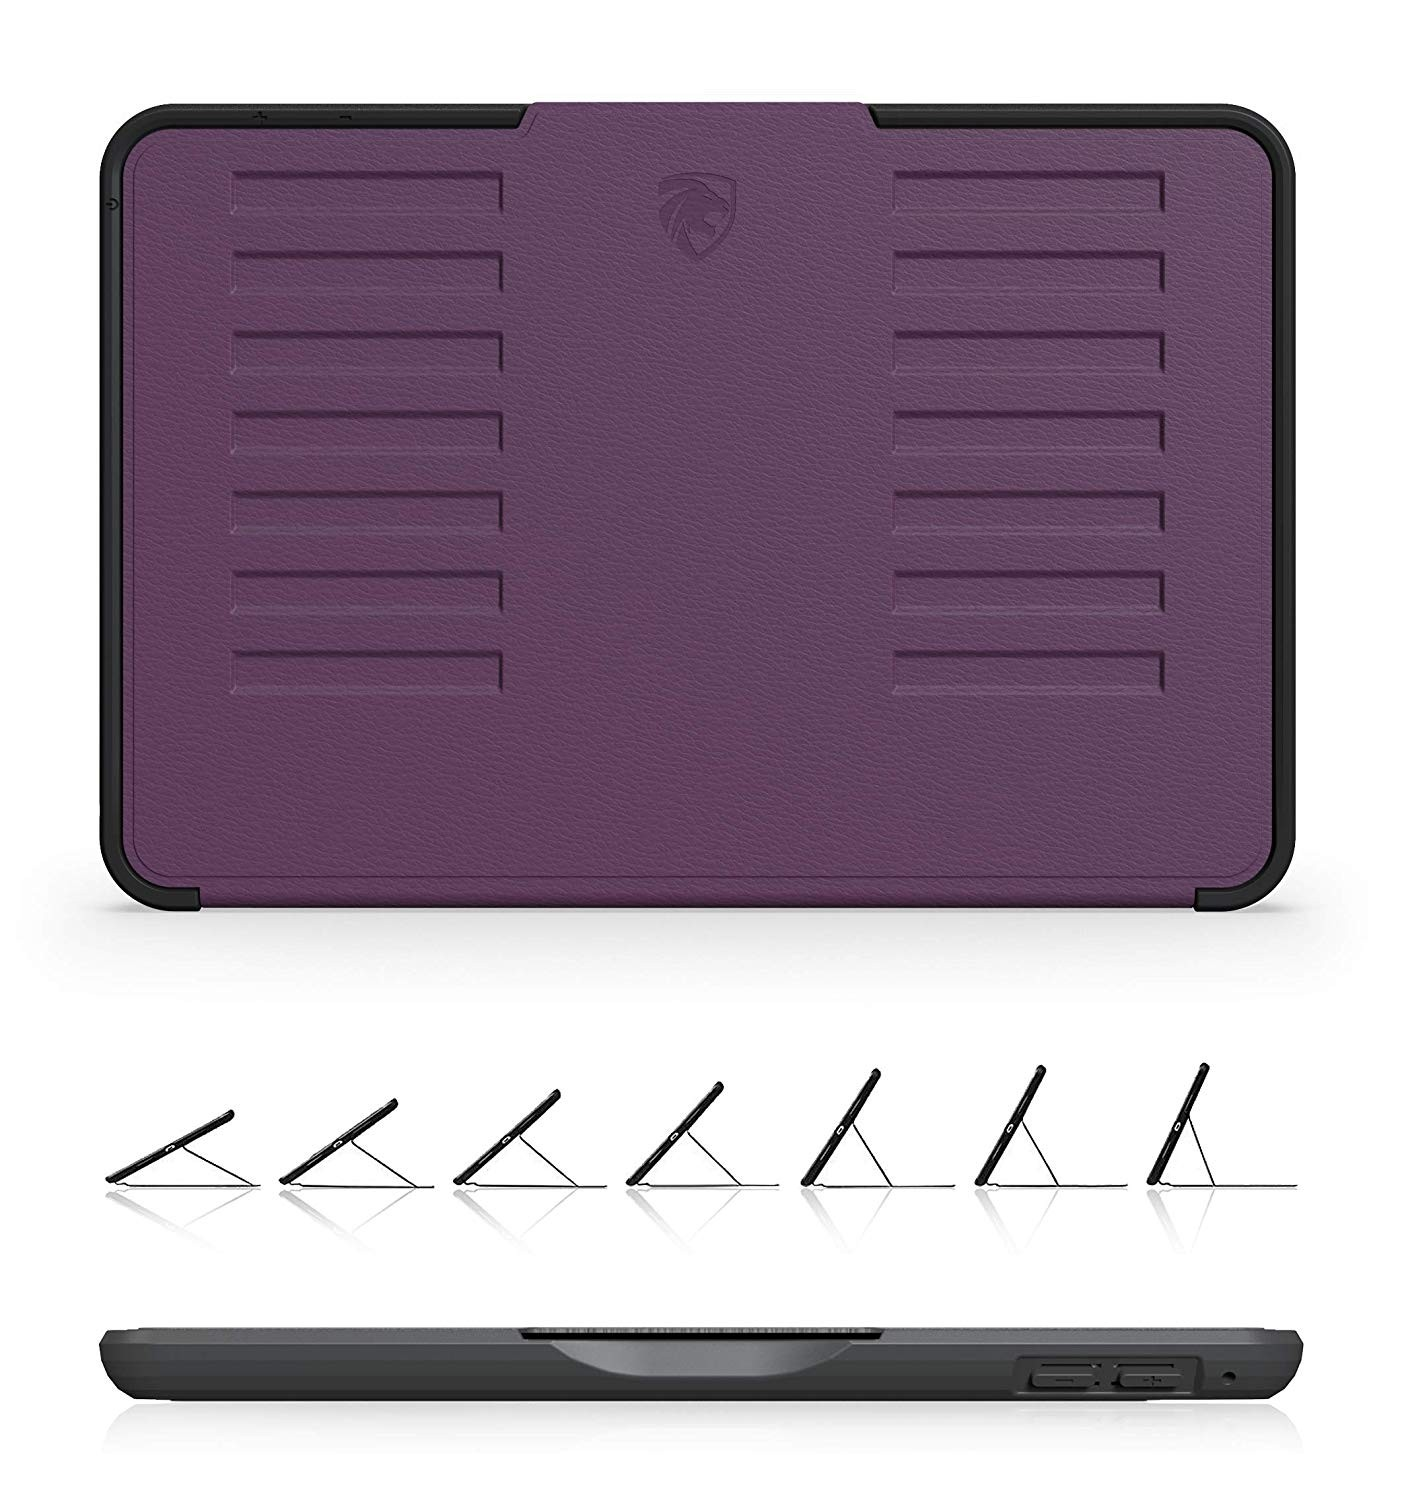 ZUGU CASE - iPad Mini 5 & 4 Muse Case - 5 Ft Drop Protection, Secure 7 Angle Magnetic Stand - Purple, ZG-M-MIN5P